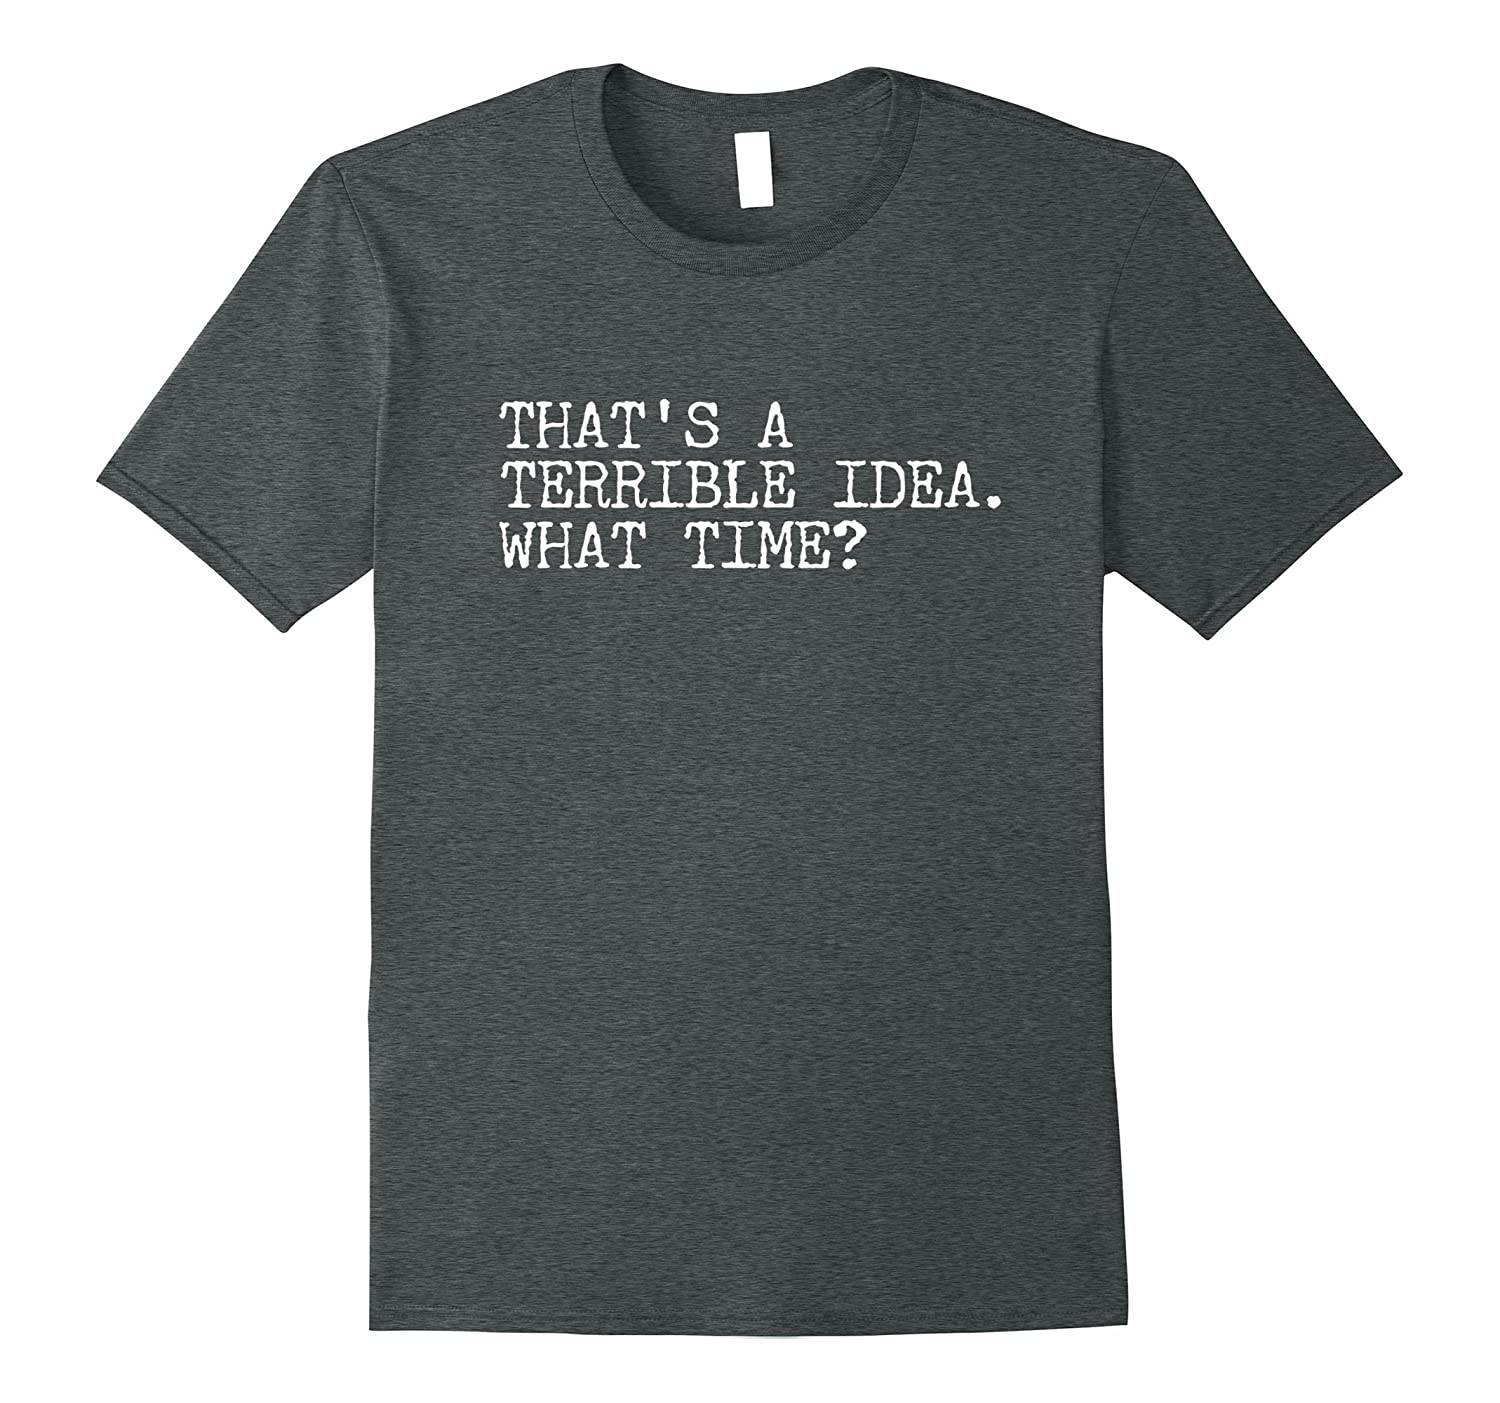 Thats A Terrible Idea What Time Funny Shirt Horrible Idea-Vaci